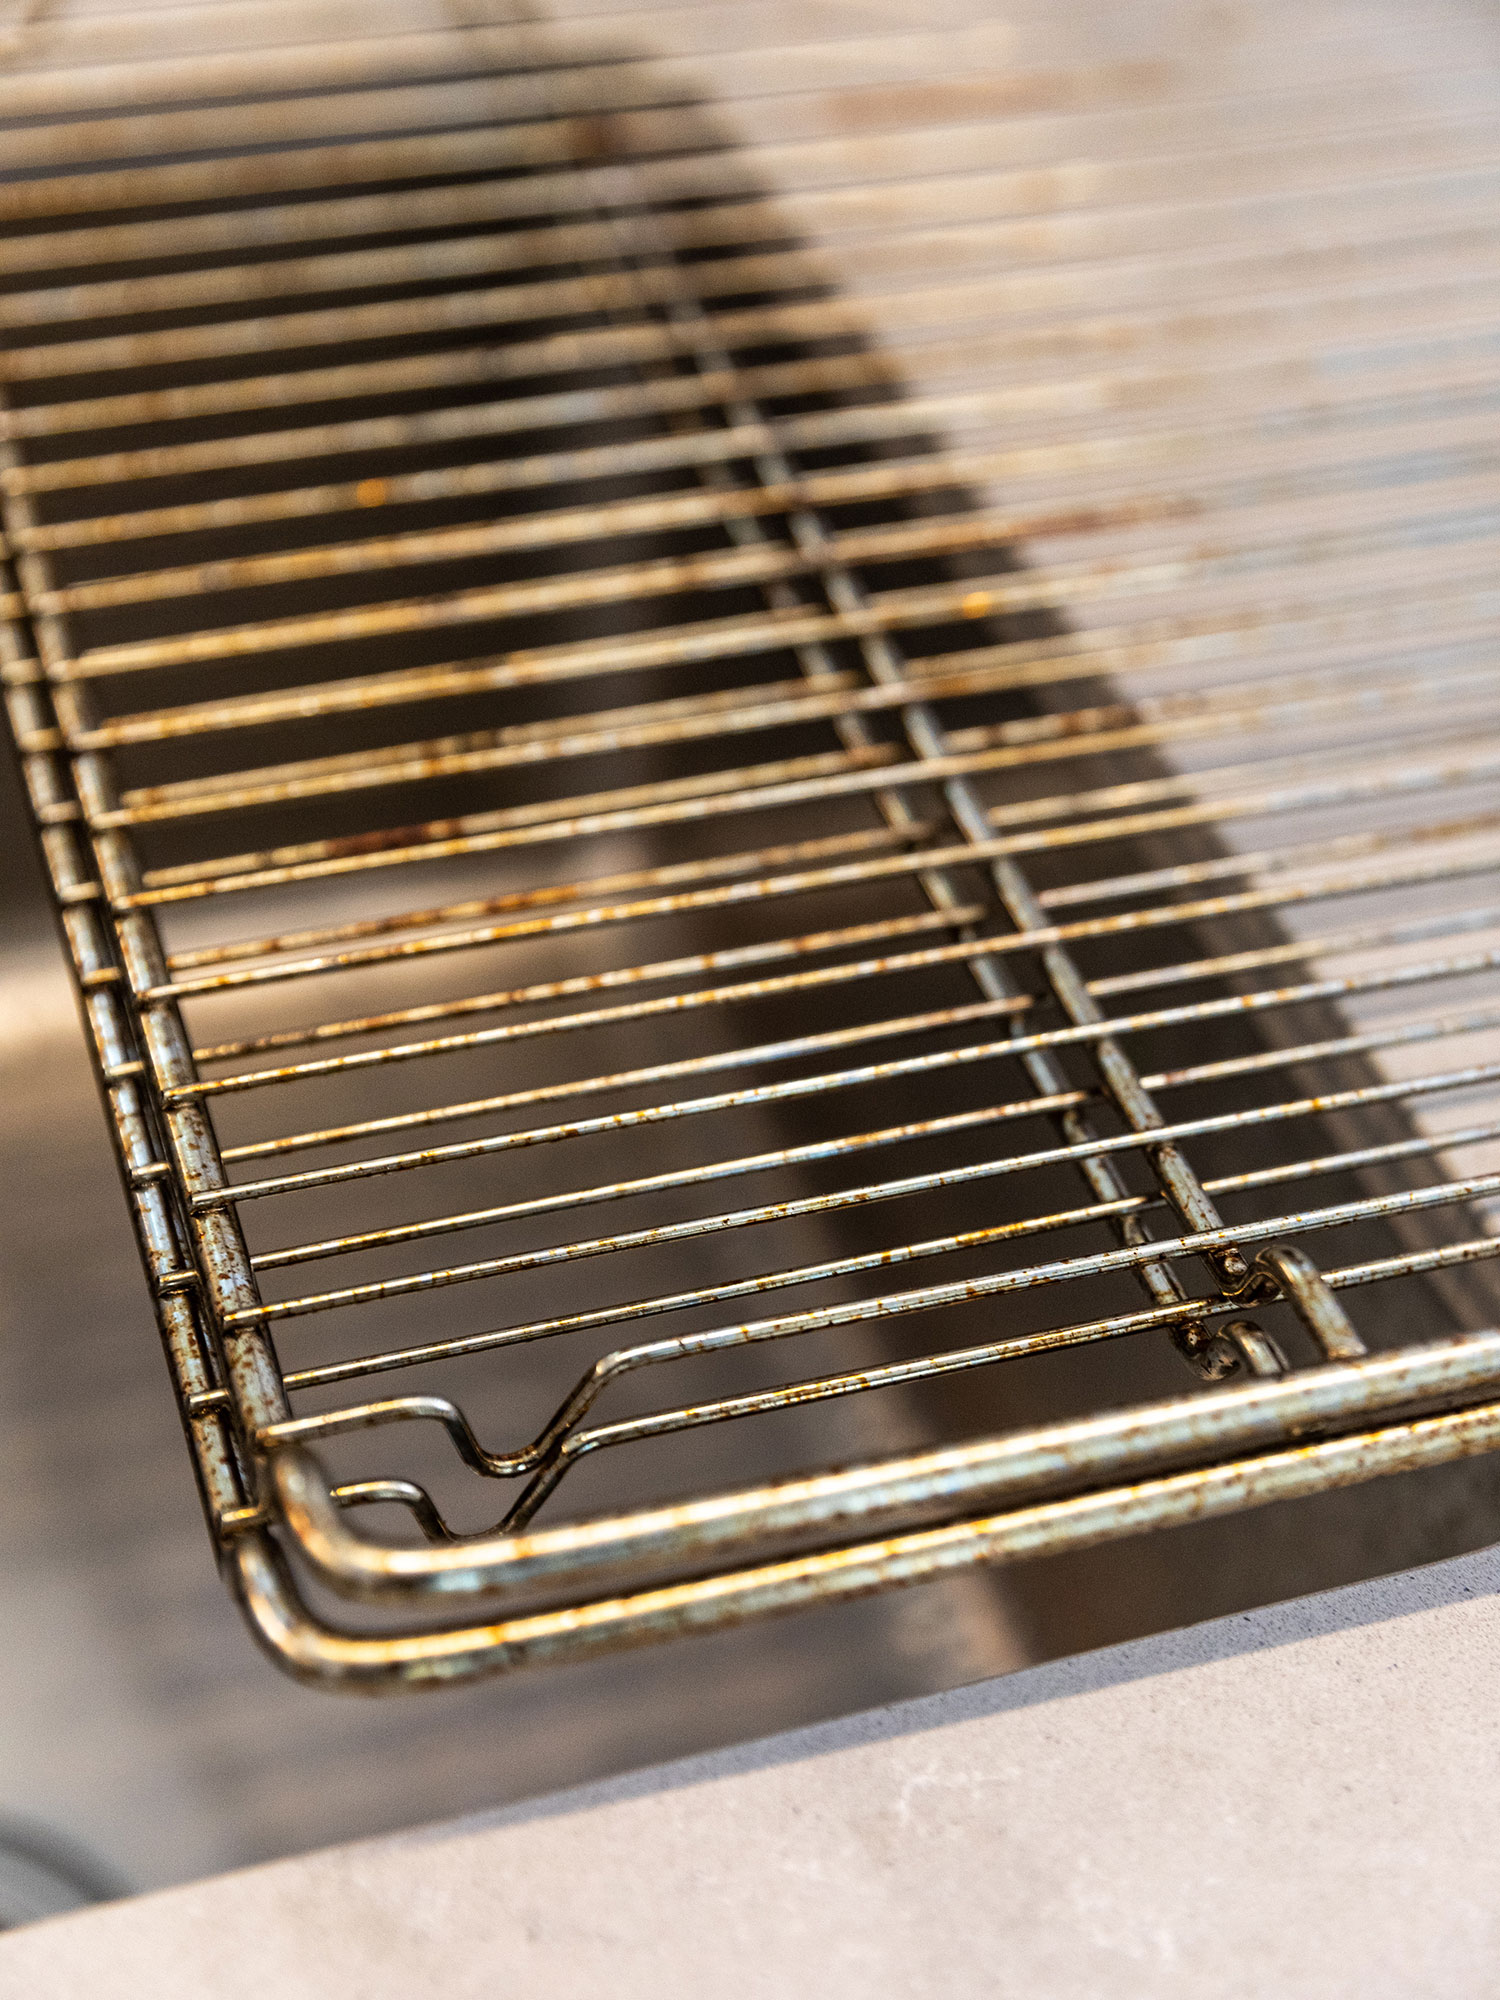 to clean your oven racks